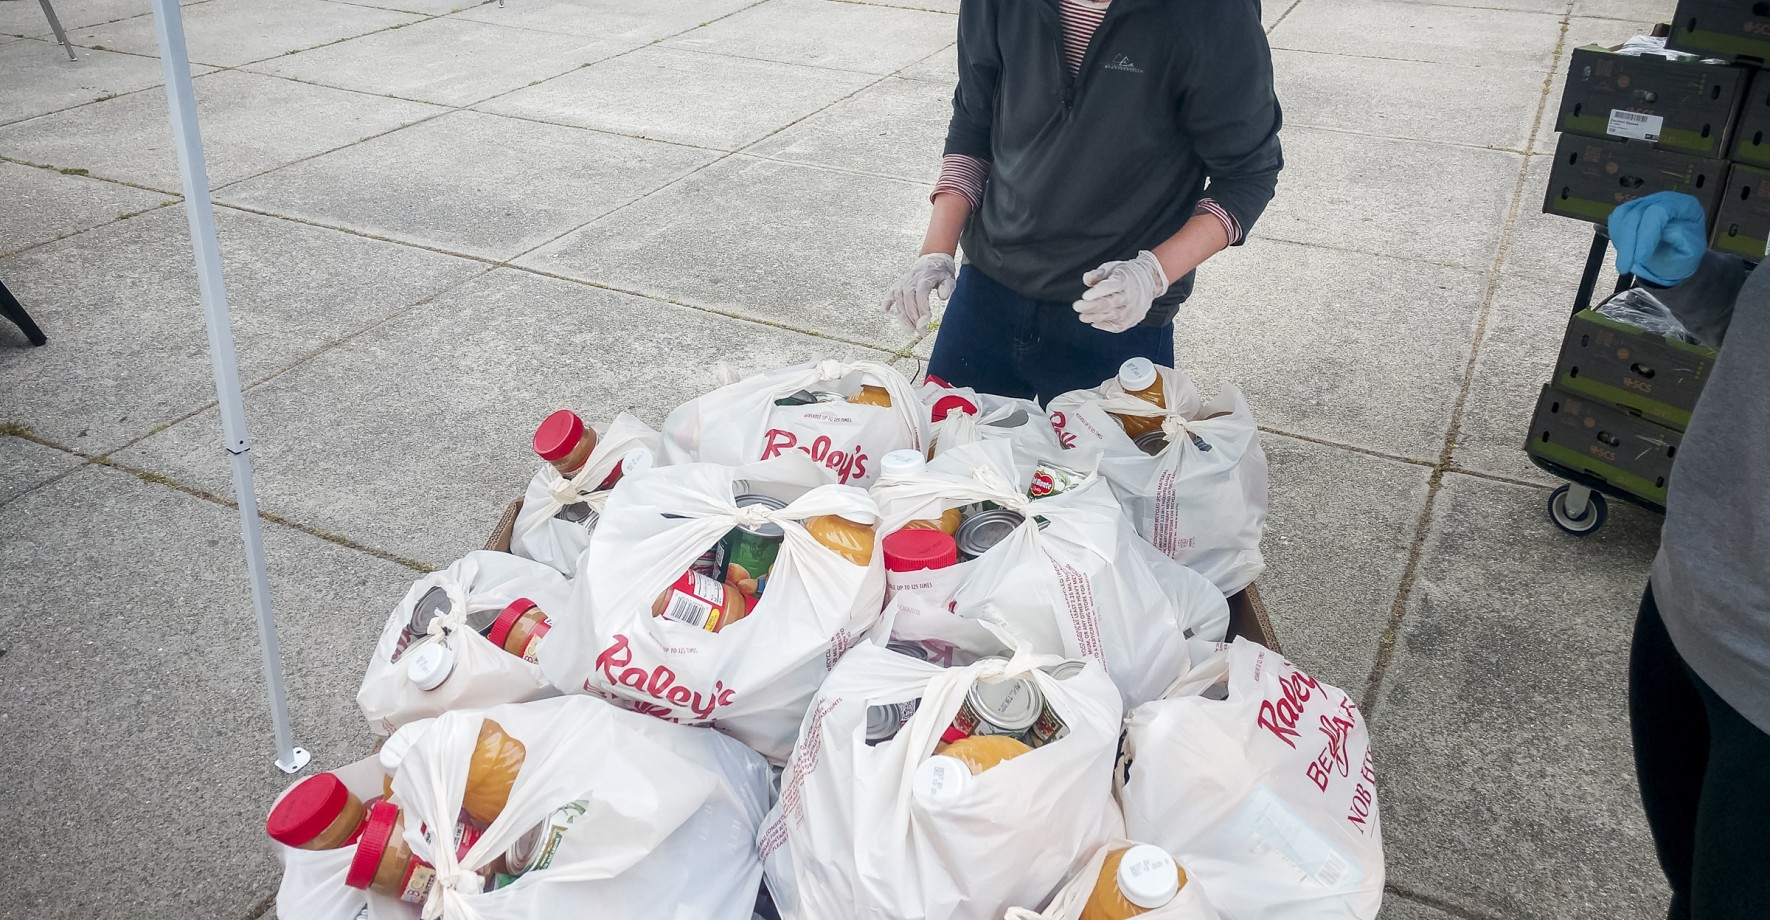 Volunteer prepares bags of food for distribution at a meal site during coronavirus closures.